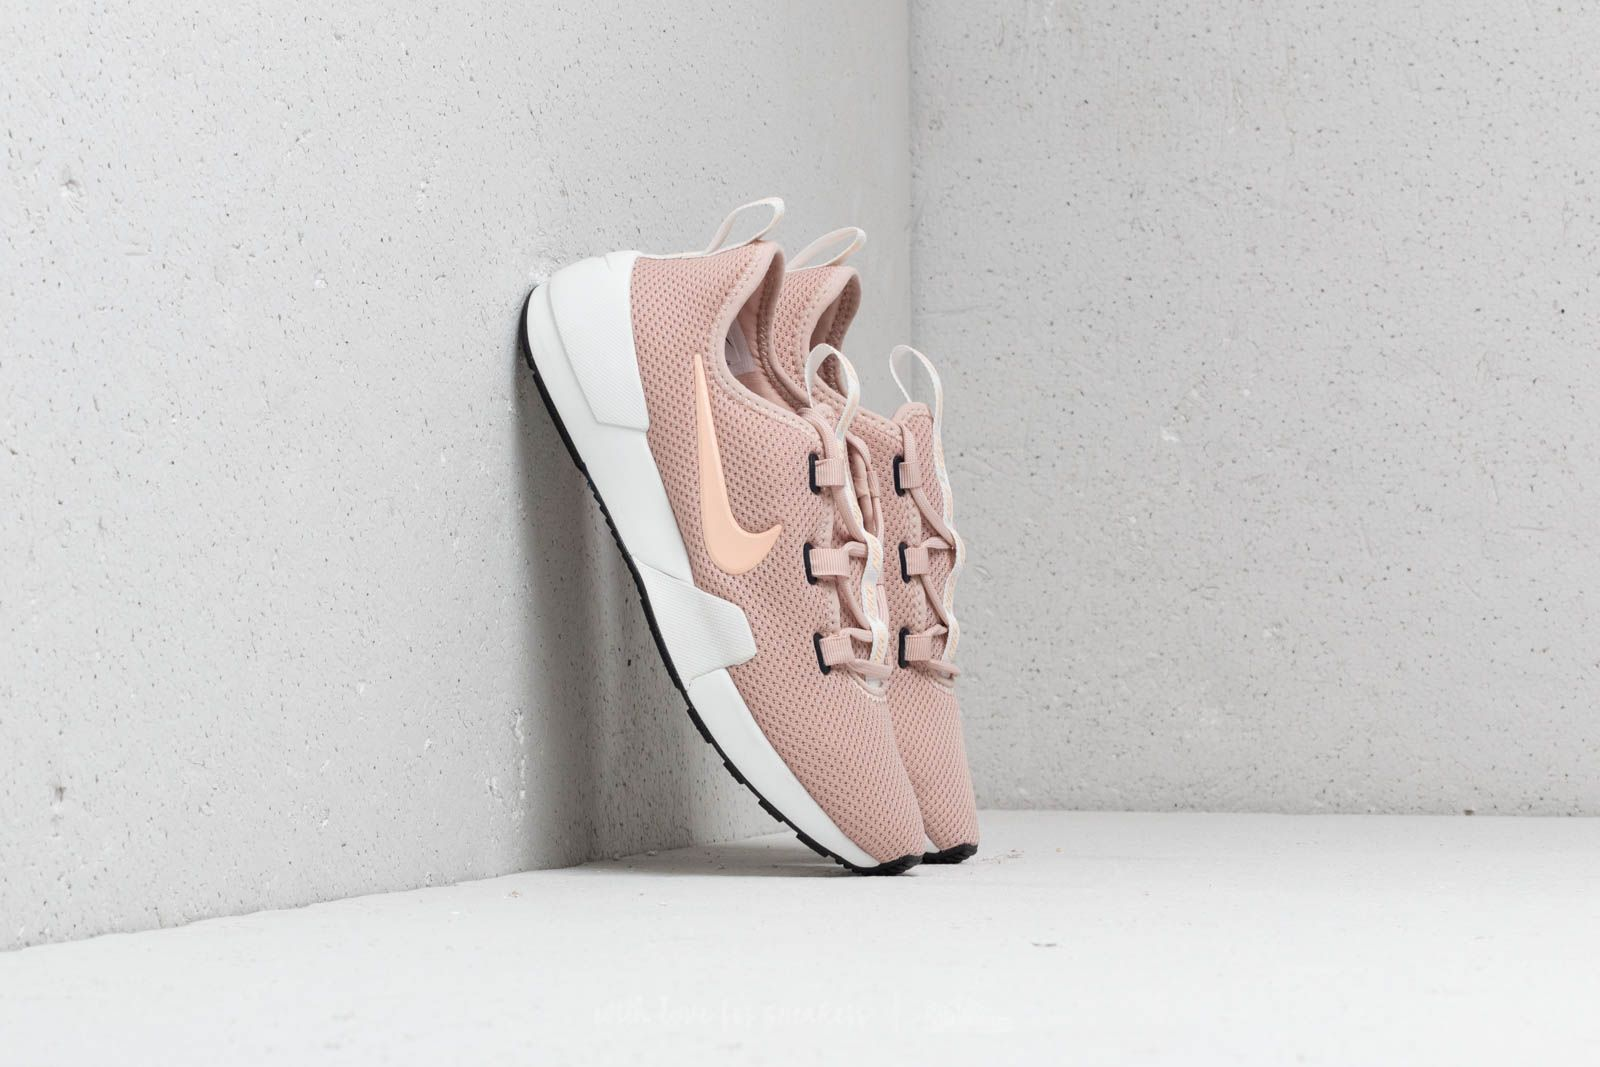 promo code e83d5 9a125 Nike Wmns Ashin Modern Particle Beige  Crimson Tint at a great price 81 €  buy